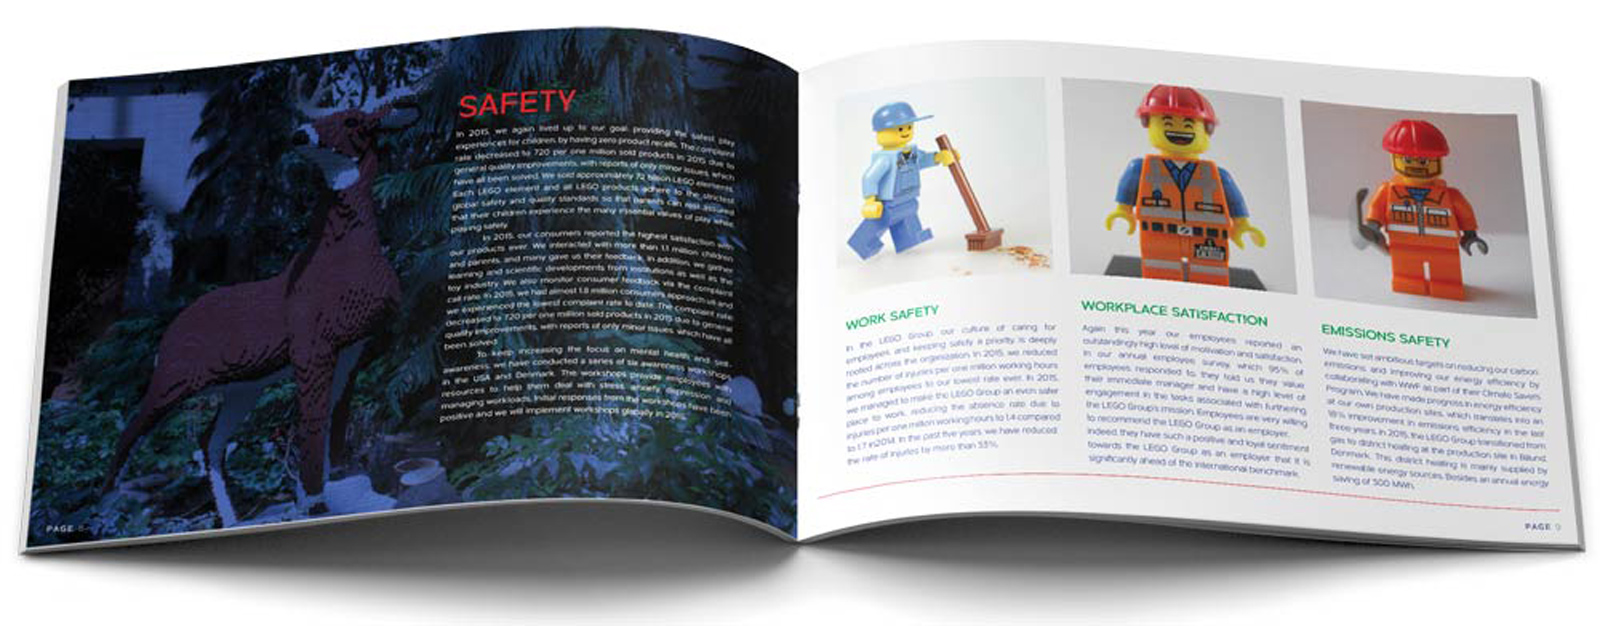 Lego Annual Report Safety Pages